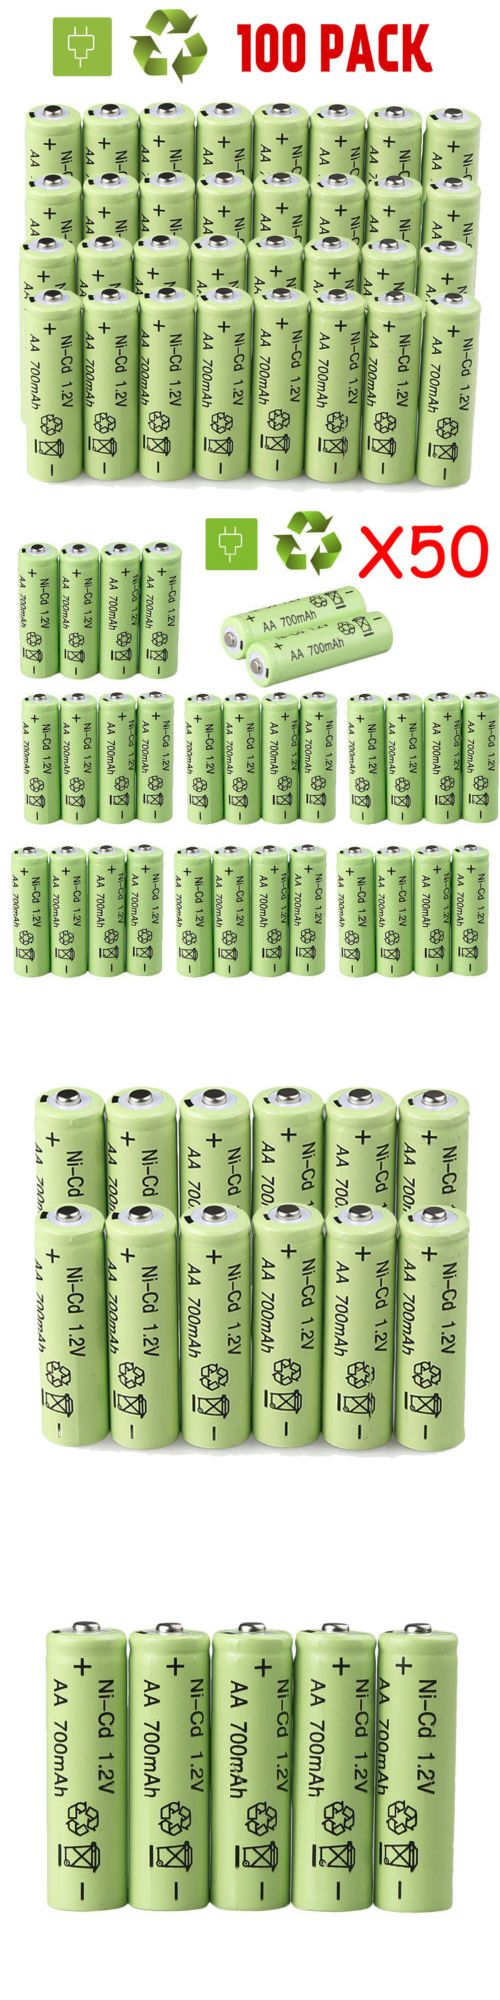 Games 51024 Lot Aa Double A Battery 1 2v Nicd 700mah Rechargeable Batteries For Garden Light Buy It Now Only 10 59 On Ebay Games Solar Lights Rechargeable Battery Charger Police Lights